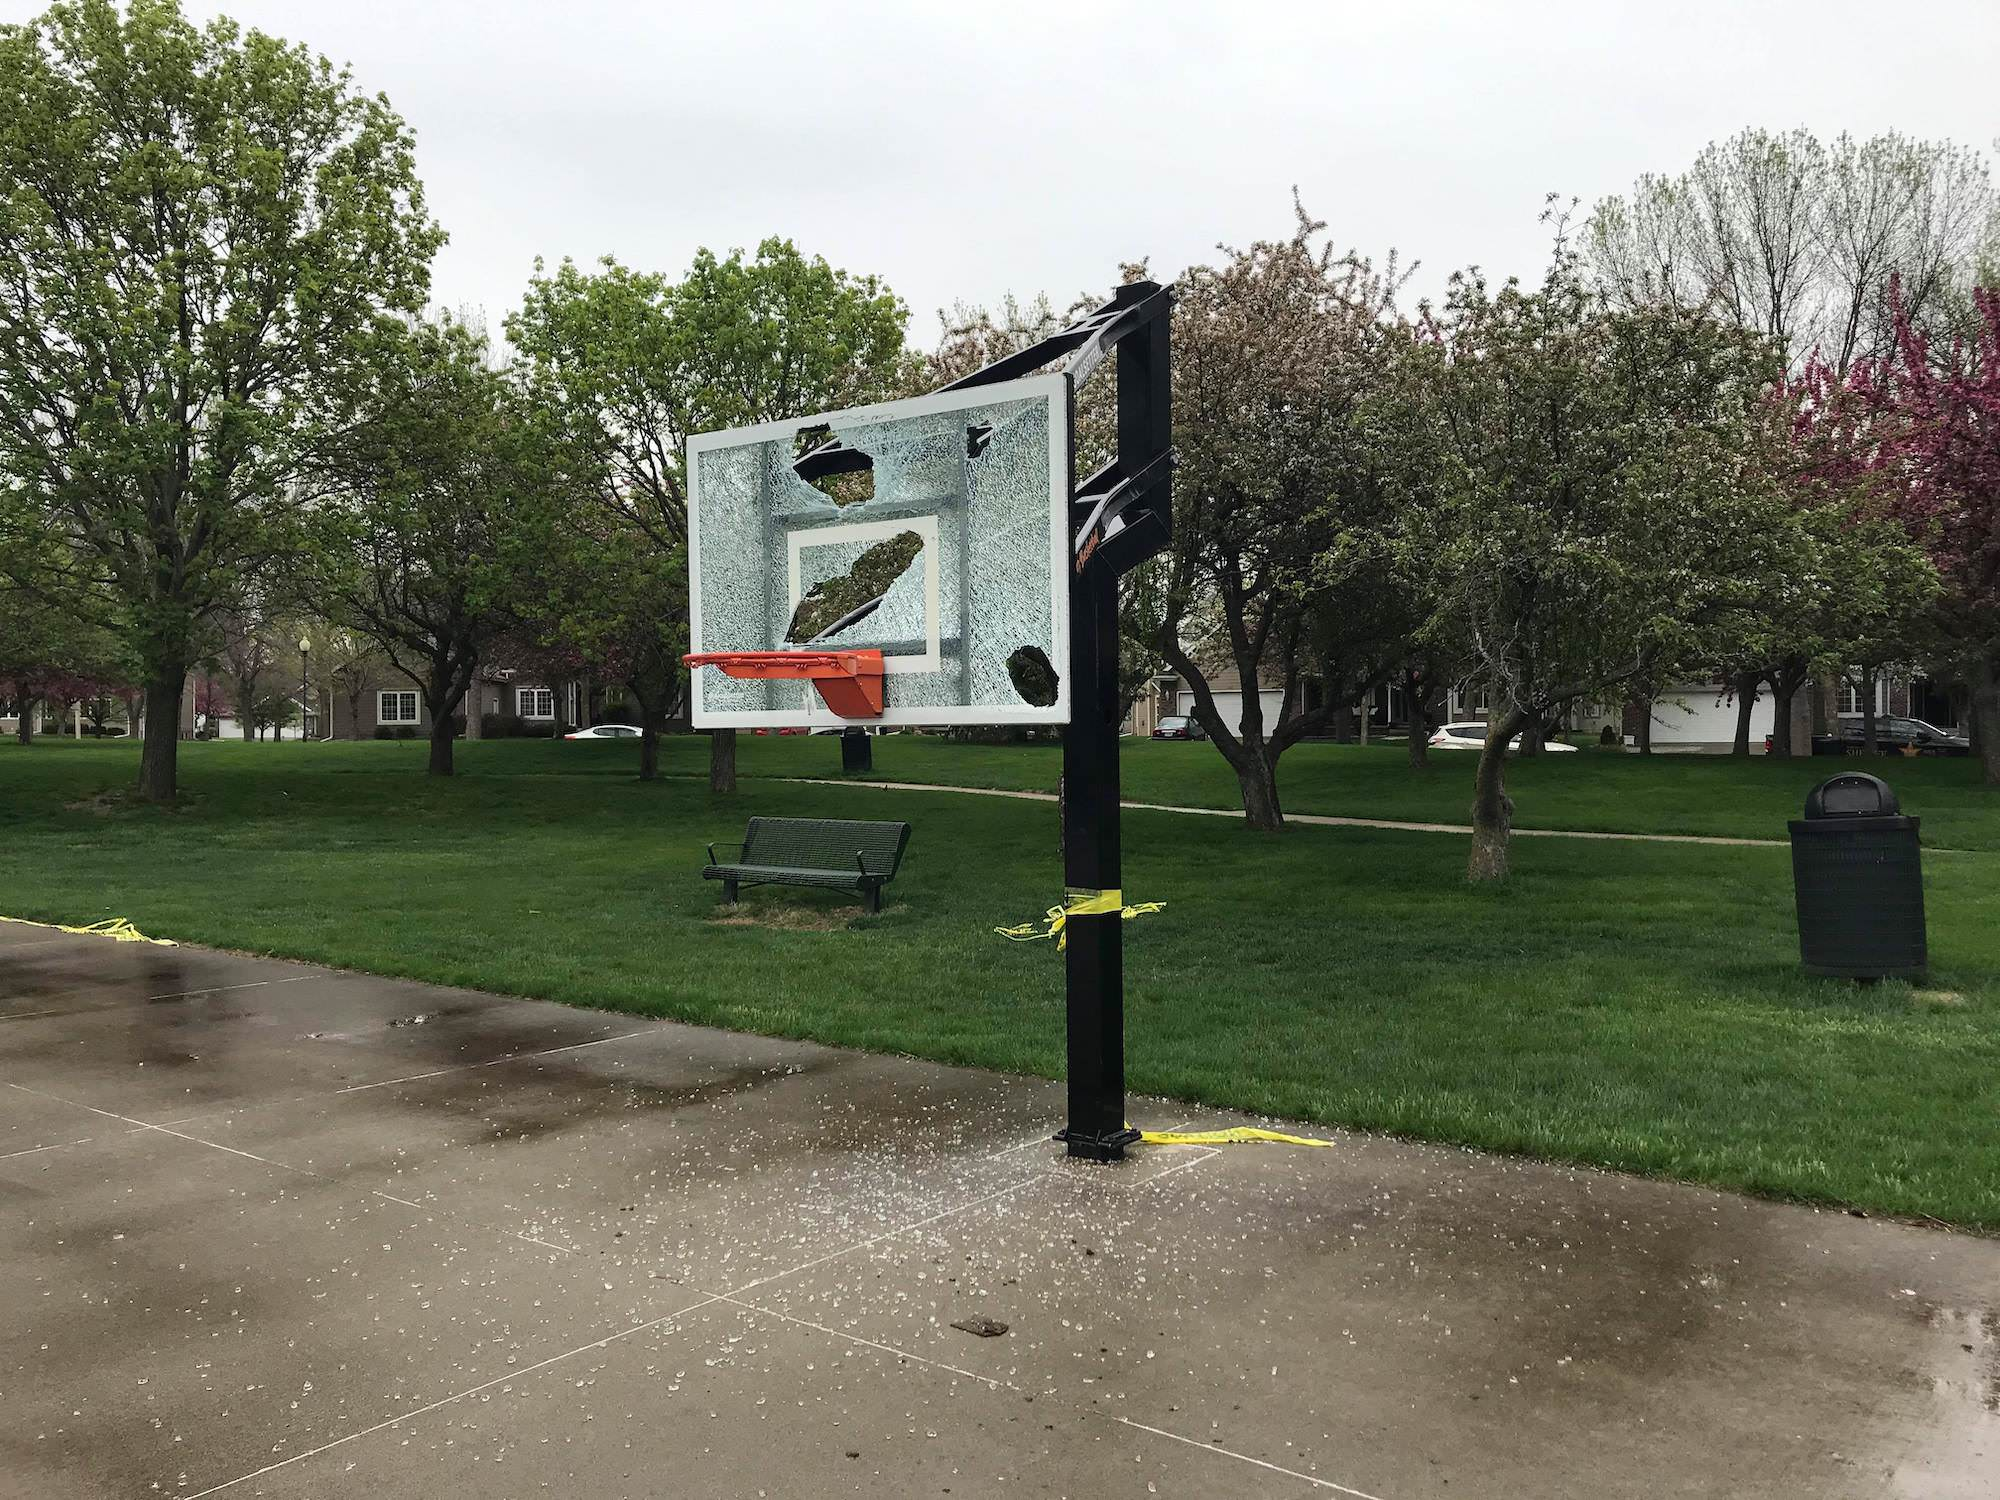 Meadows Park in Dakota Dunes Vandalized Law Enforcement seeking information